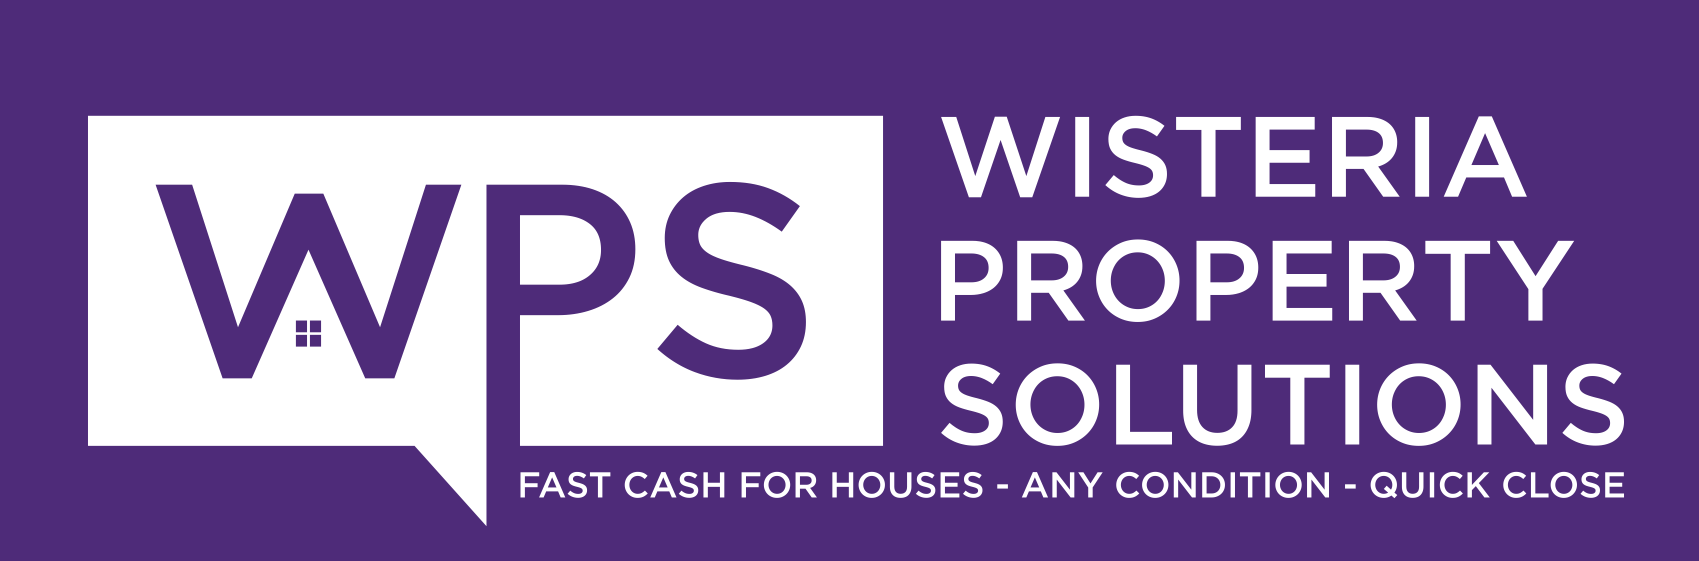 Wisteria Property Solutions